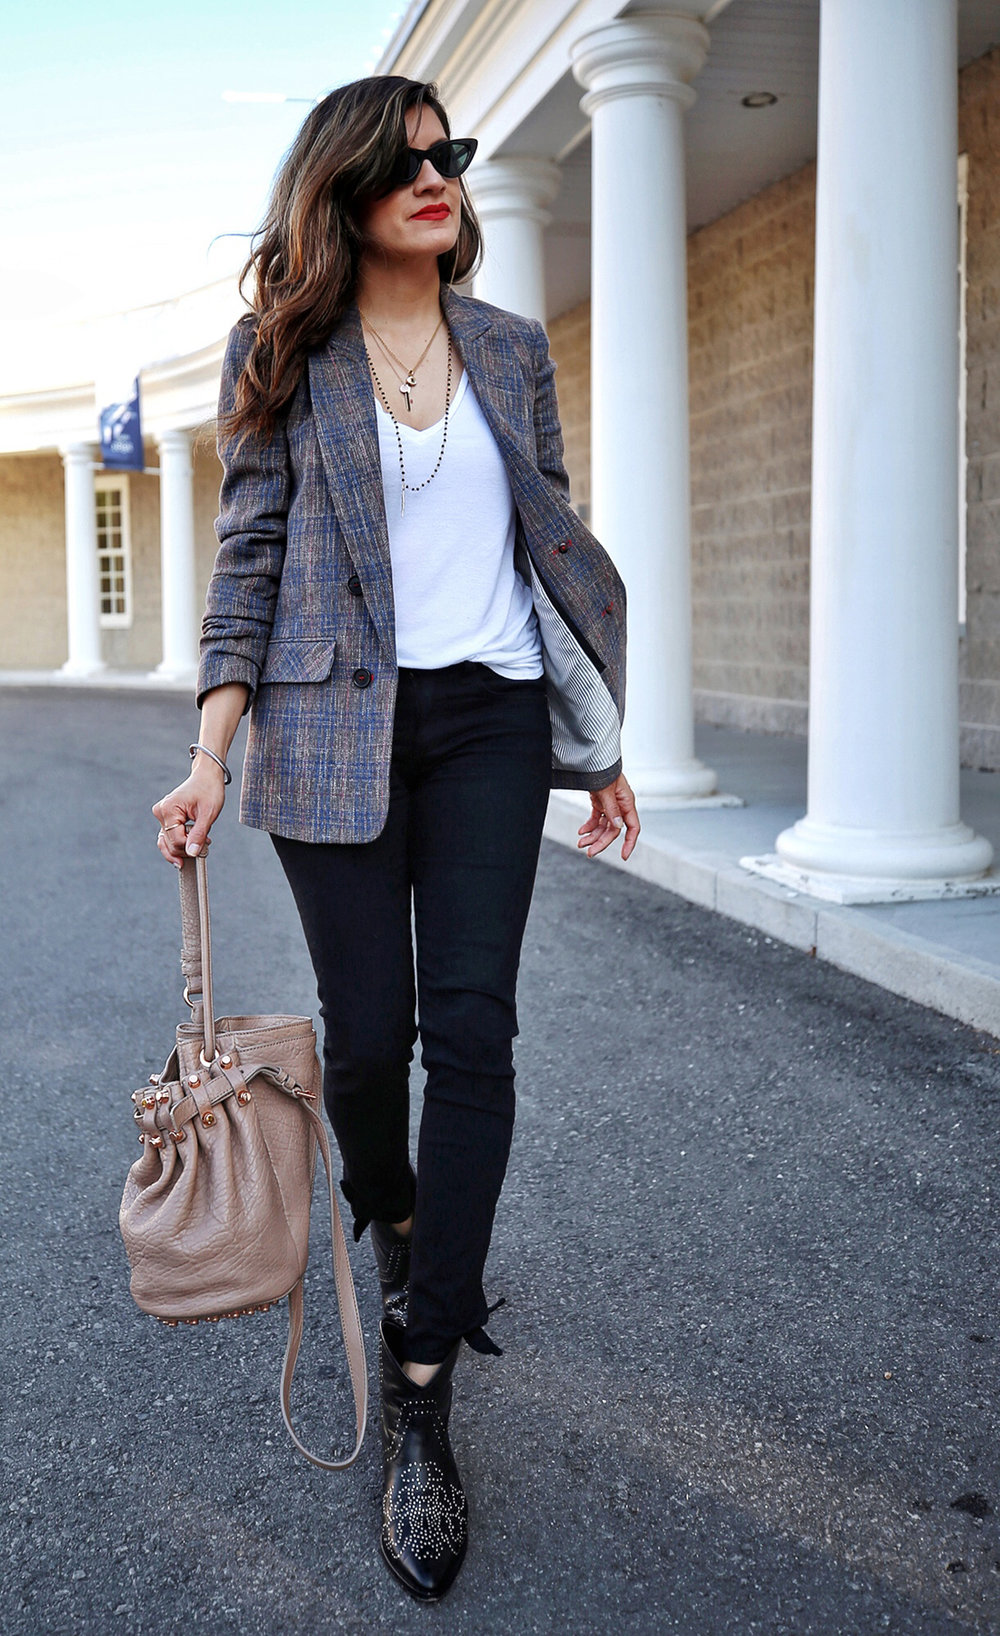 Veronica Beard plaid blazer, Rag & Bone black skinny jeans, Isabel Marant black studded Dollan cowboy boots, Alexander Wang tanned Diego bag with rosegold hardwaare, street style, woahstyle.com by nathalie martin  13.jpg